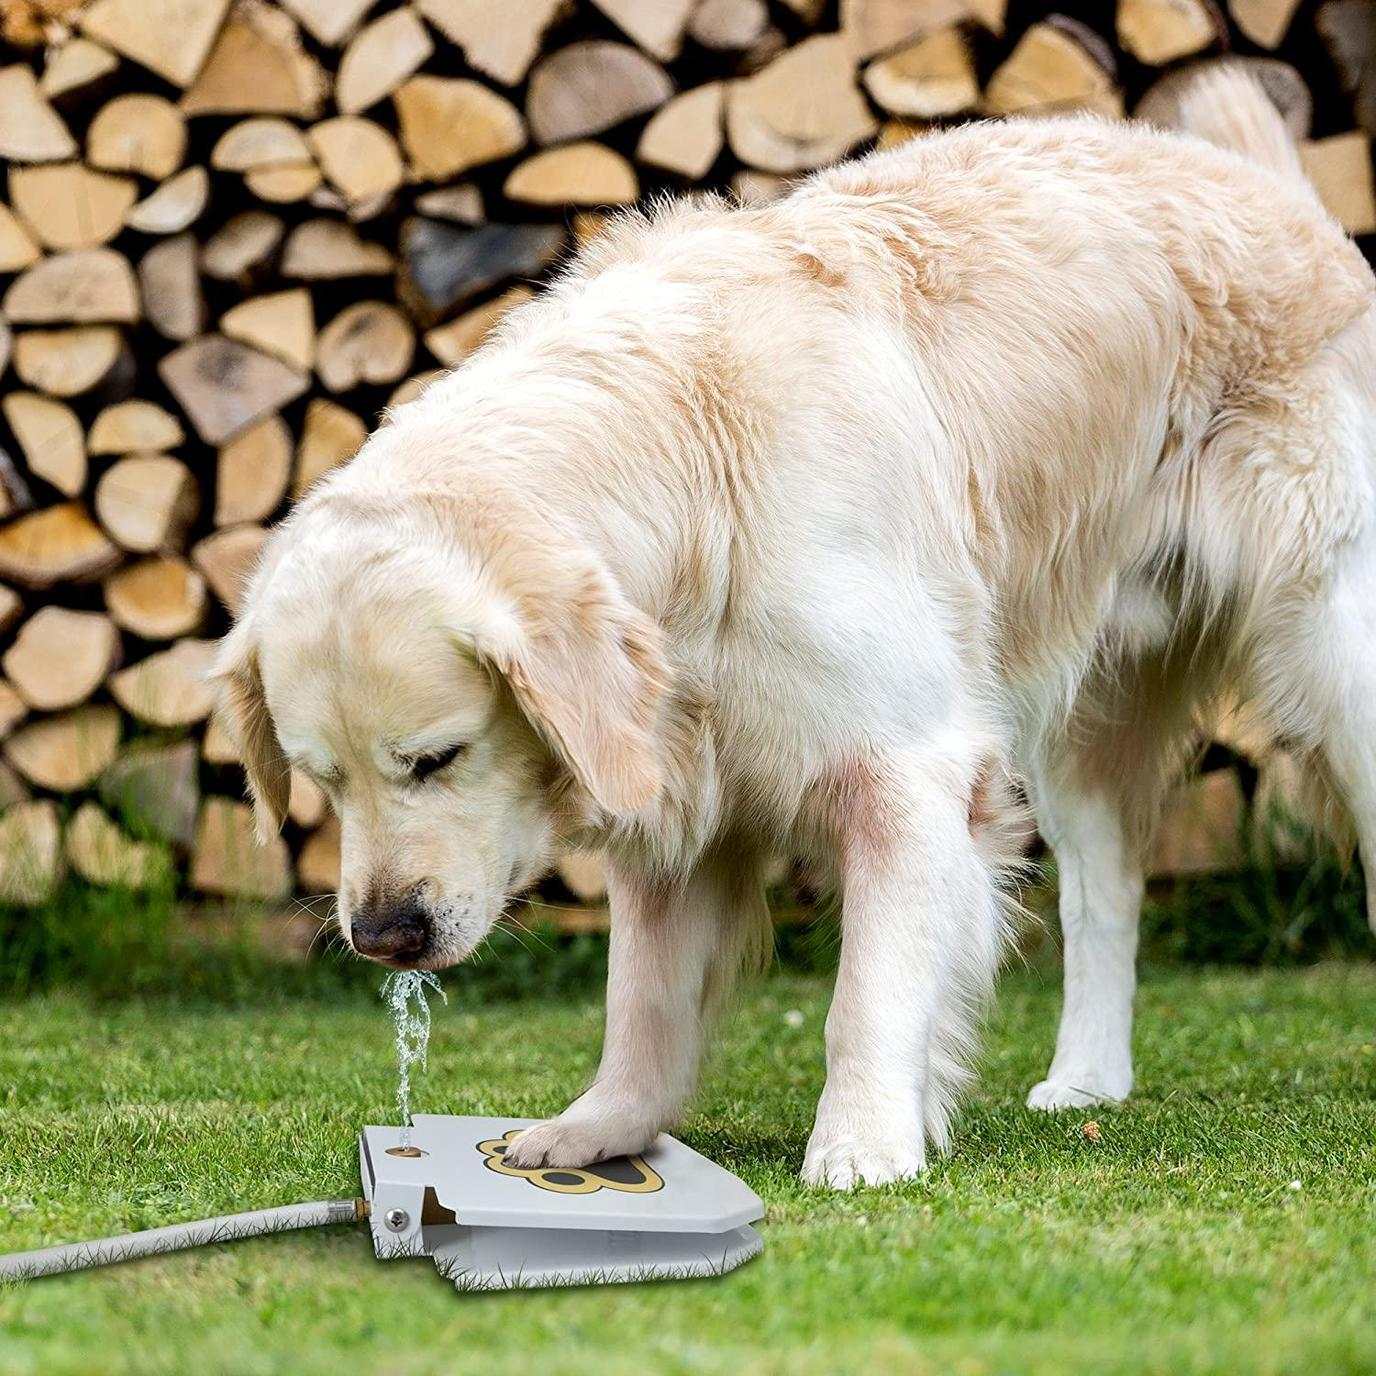 A Retreiver Steps on the Pikolai Outdoor Water Dispenser to Drink Water.